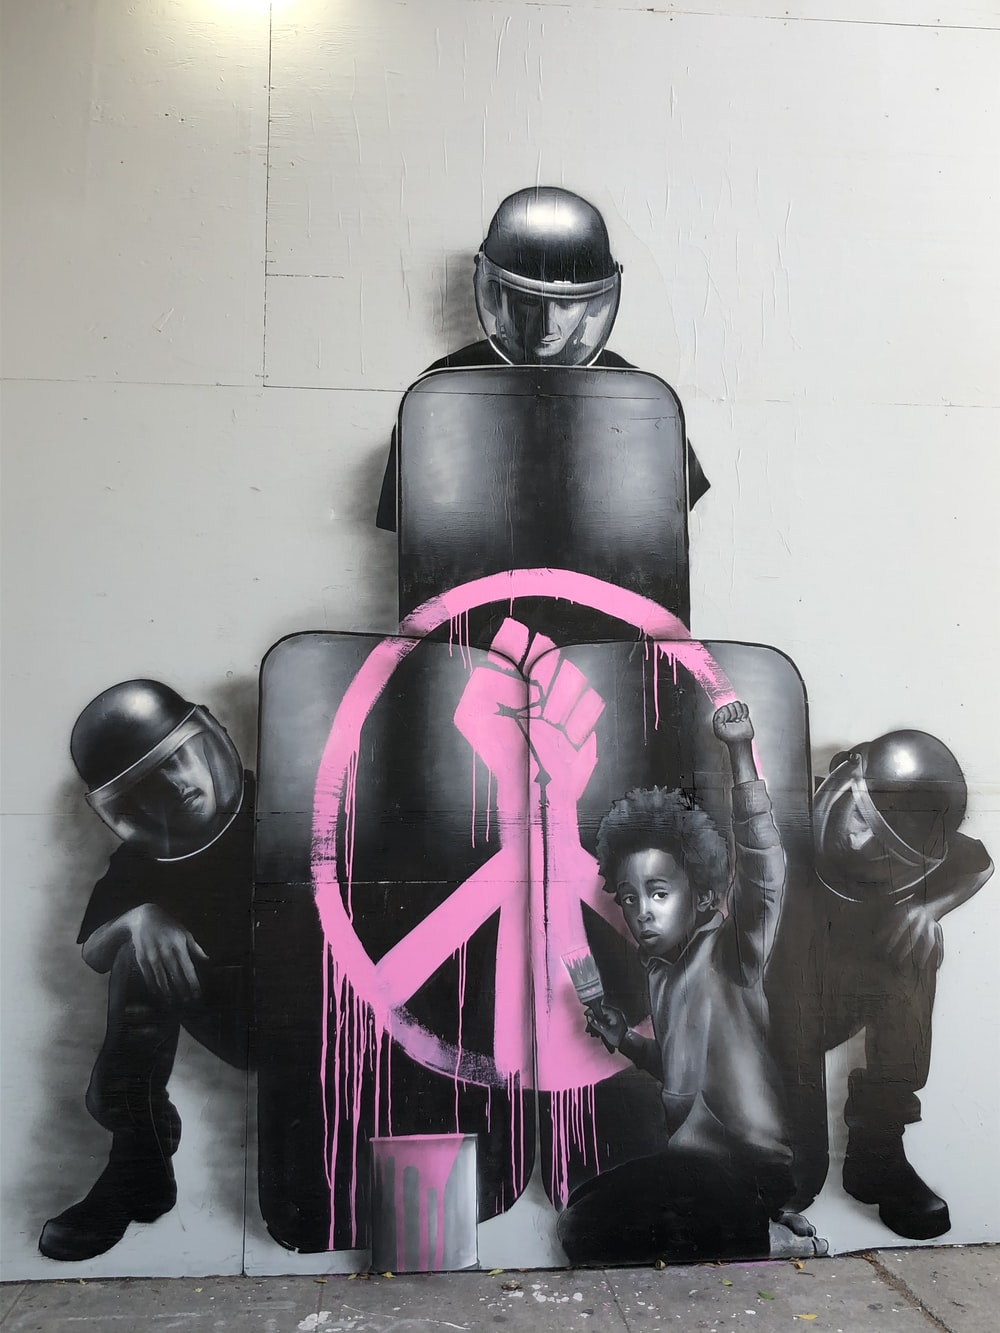 black and pink robot toy